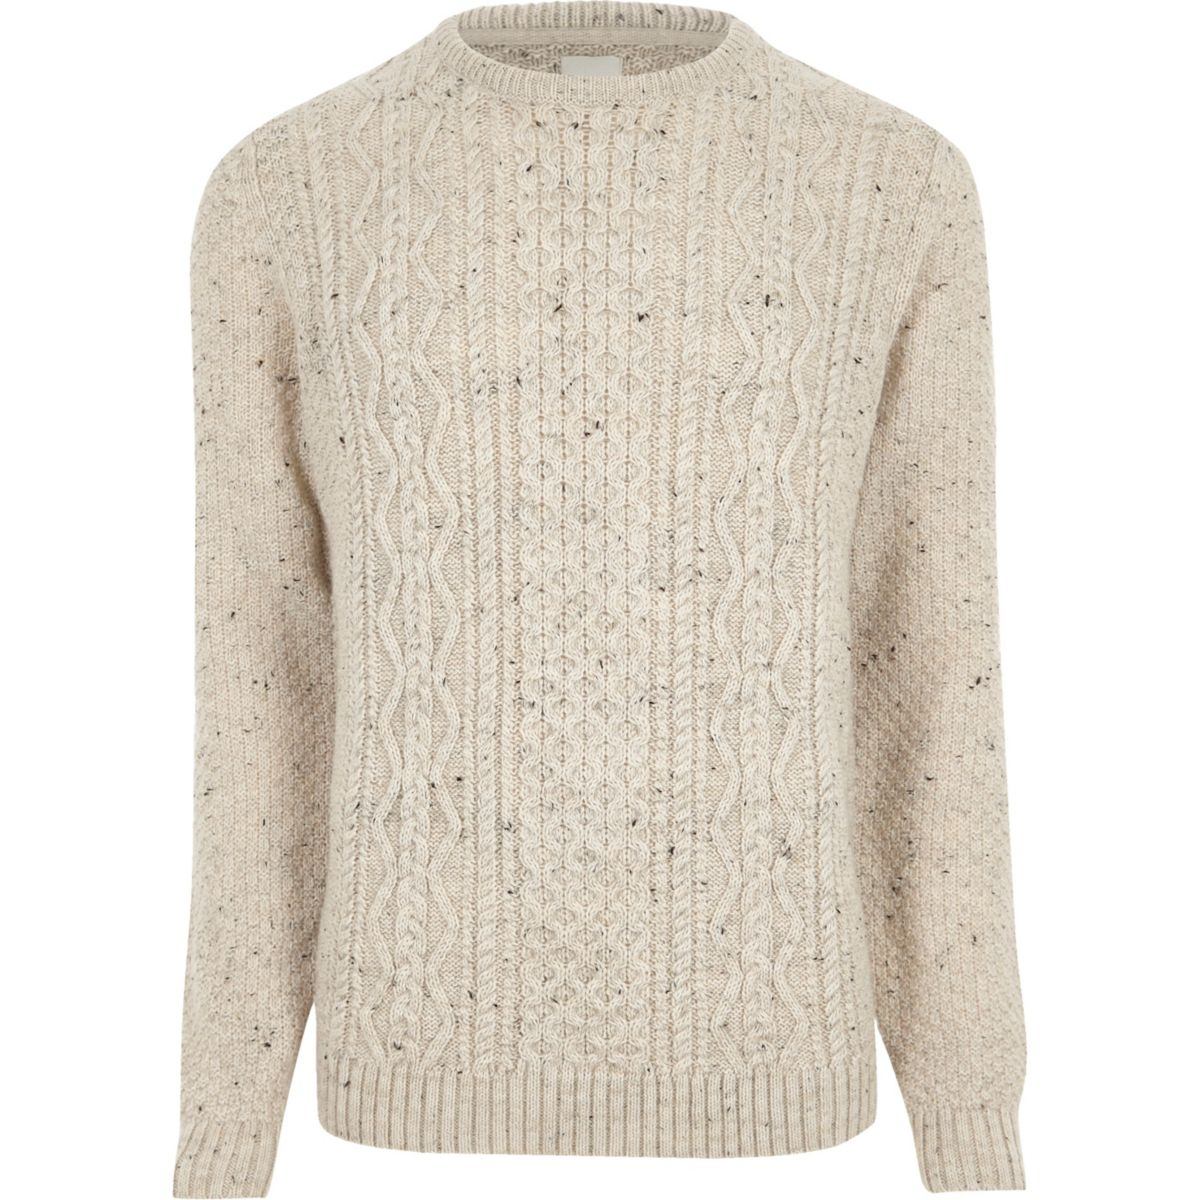 River Island Cable Knit Jumper